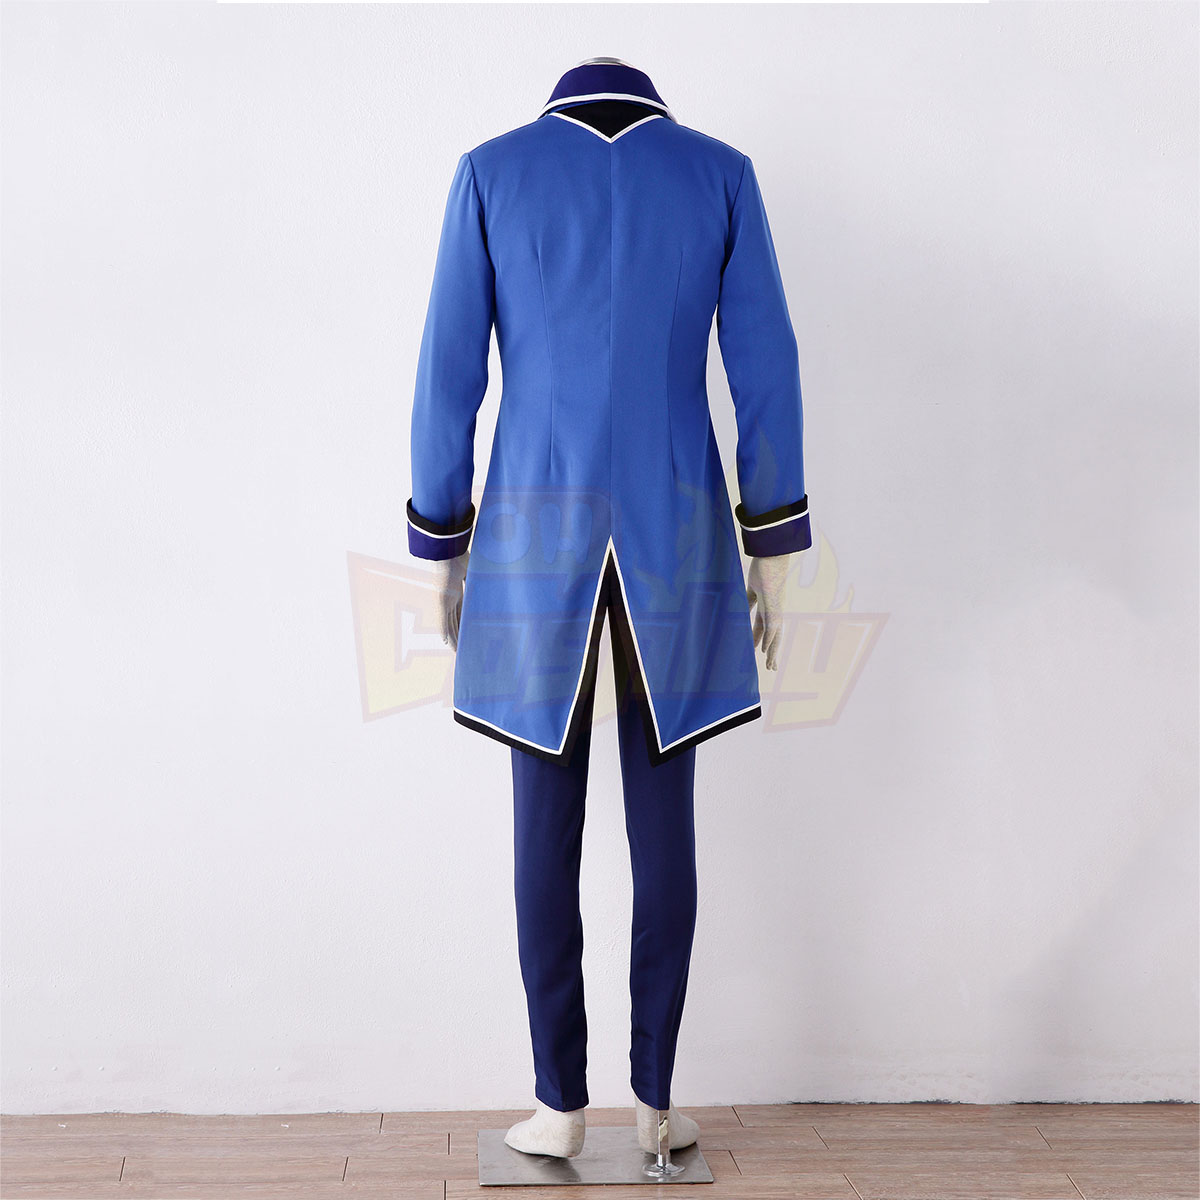 K Blue Organization Uniforms Cosplay Costumes Deluxe Edition